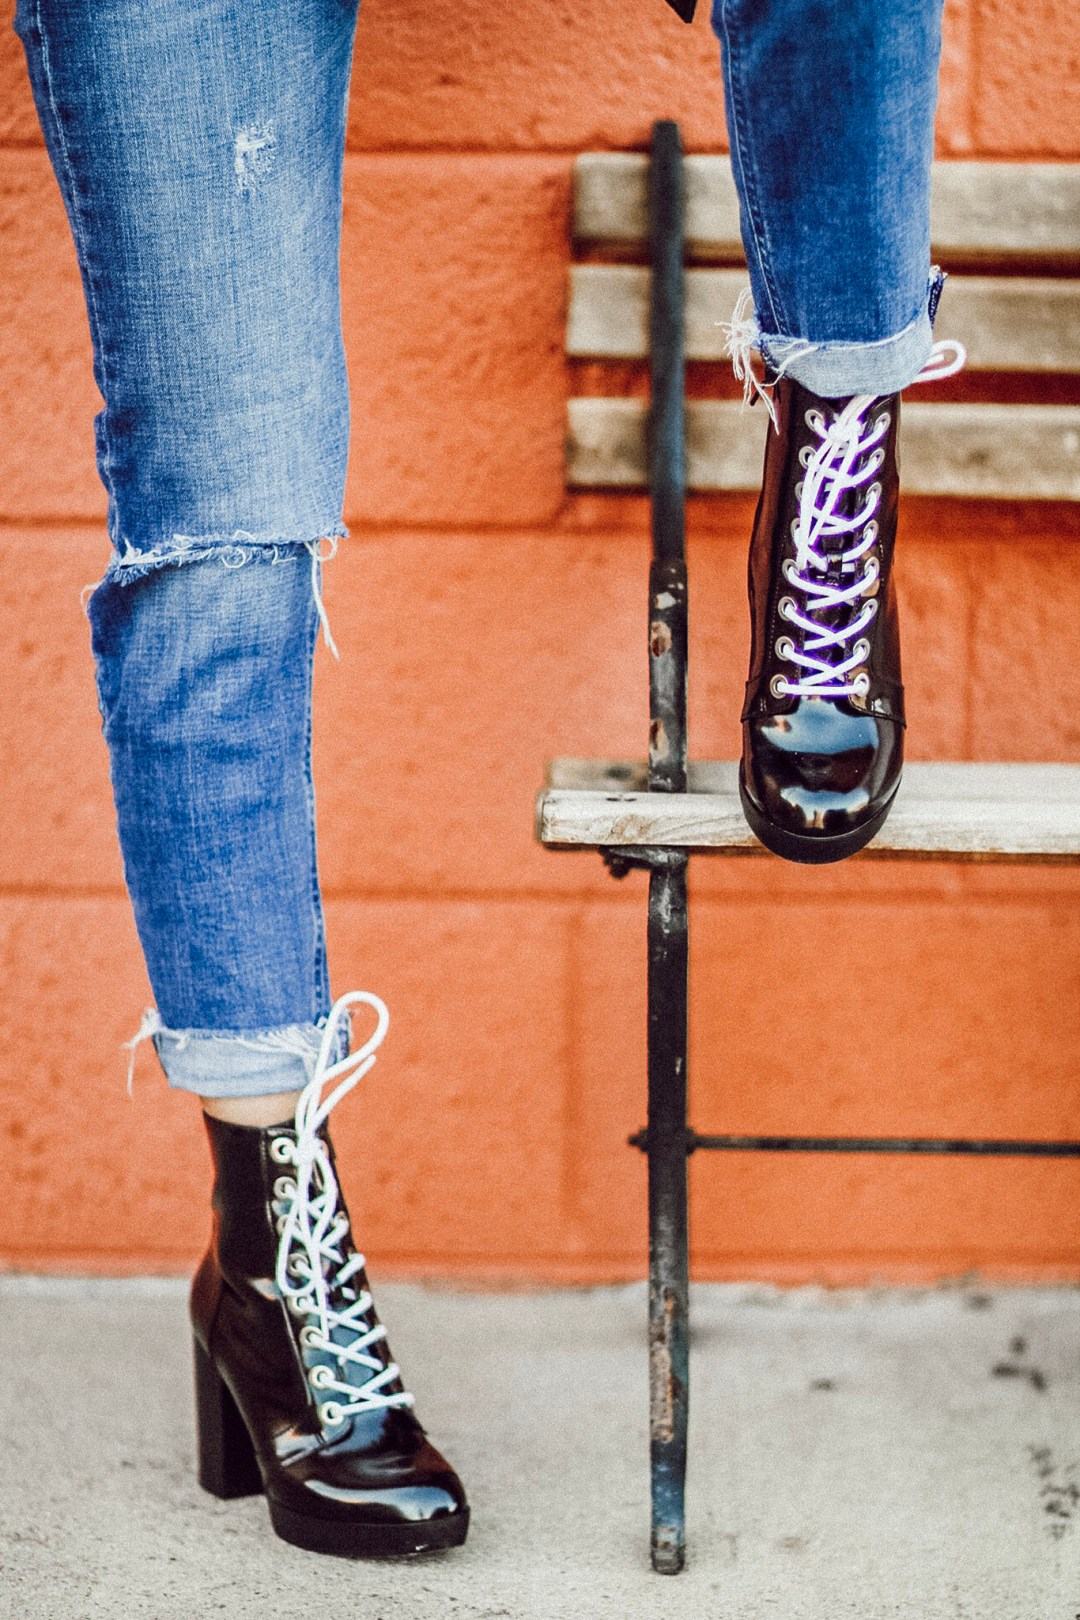 Alena Gidenko of modaprints.com shares her favorite black lace up booties for Fall and Winter